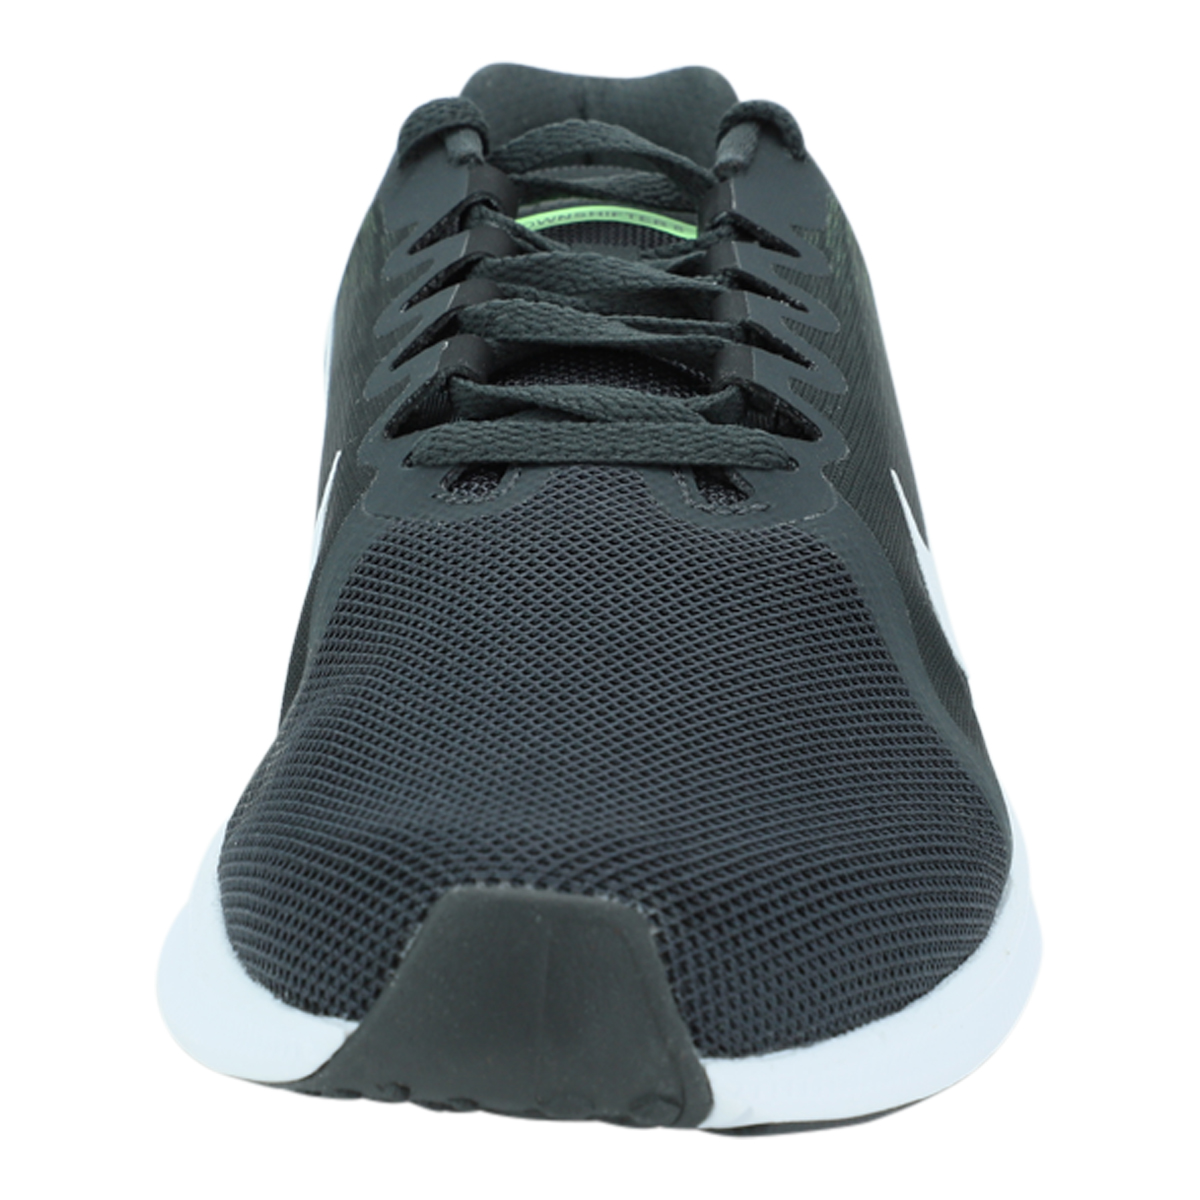 Nike-Men-039-s-Downshifter-8-Running-Shoes thumbnail 7